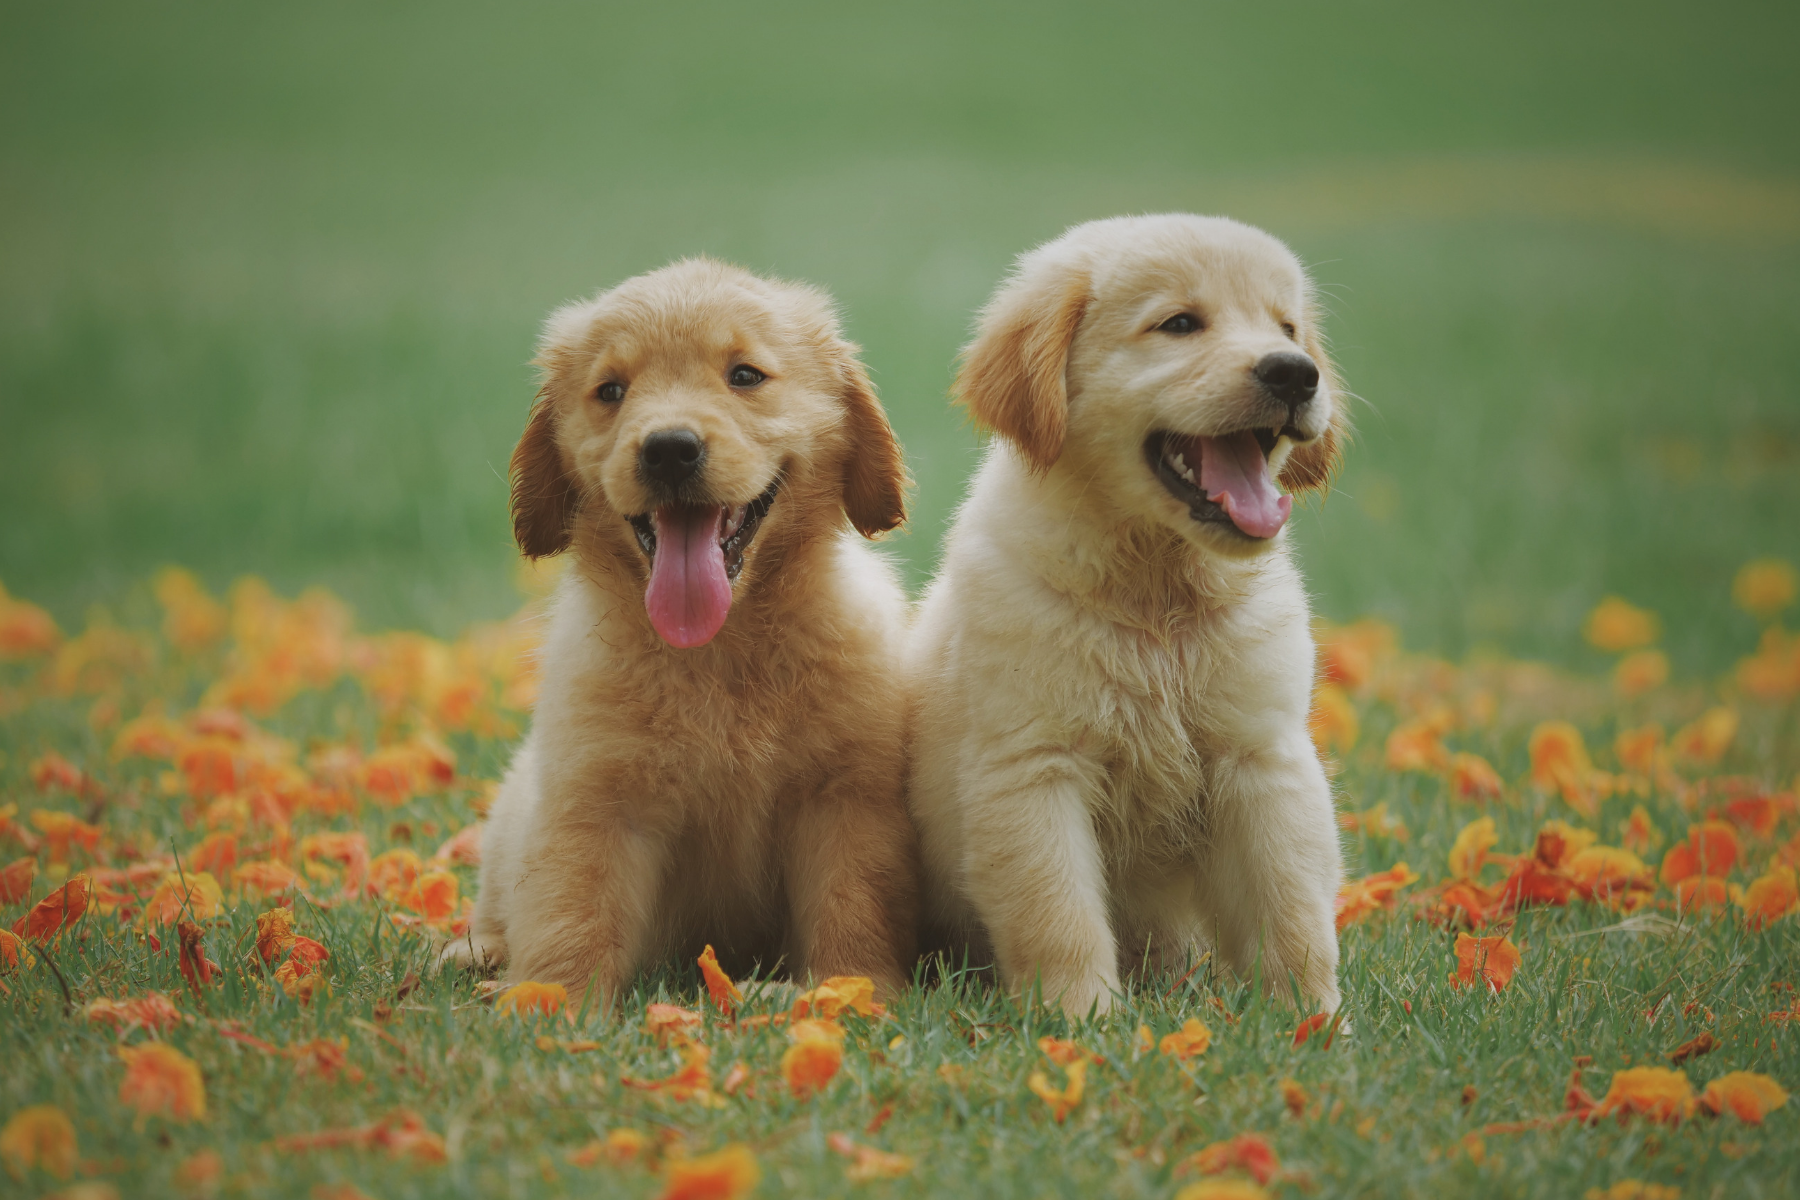 Two adorable golden puppies